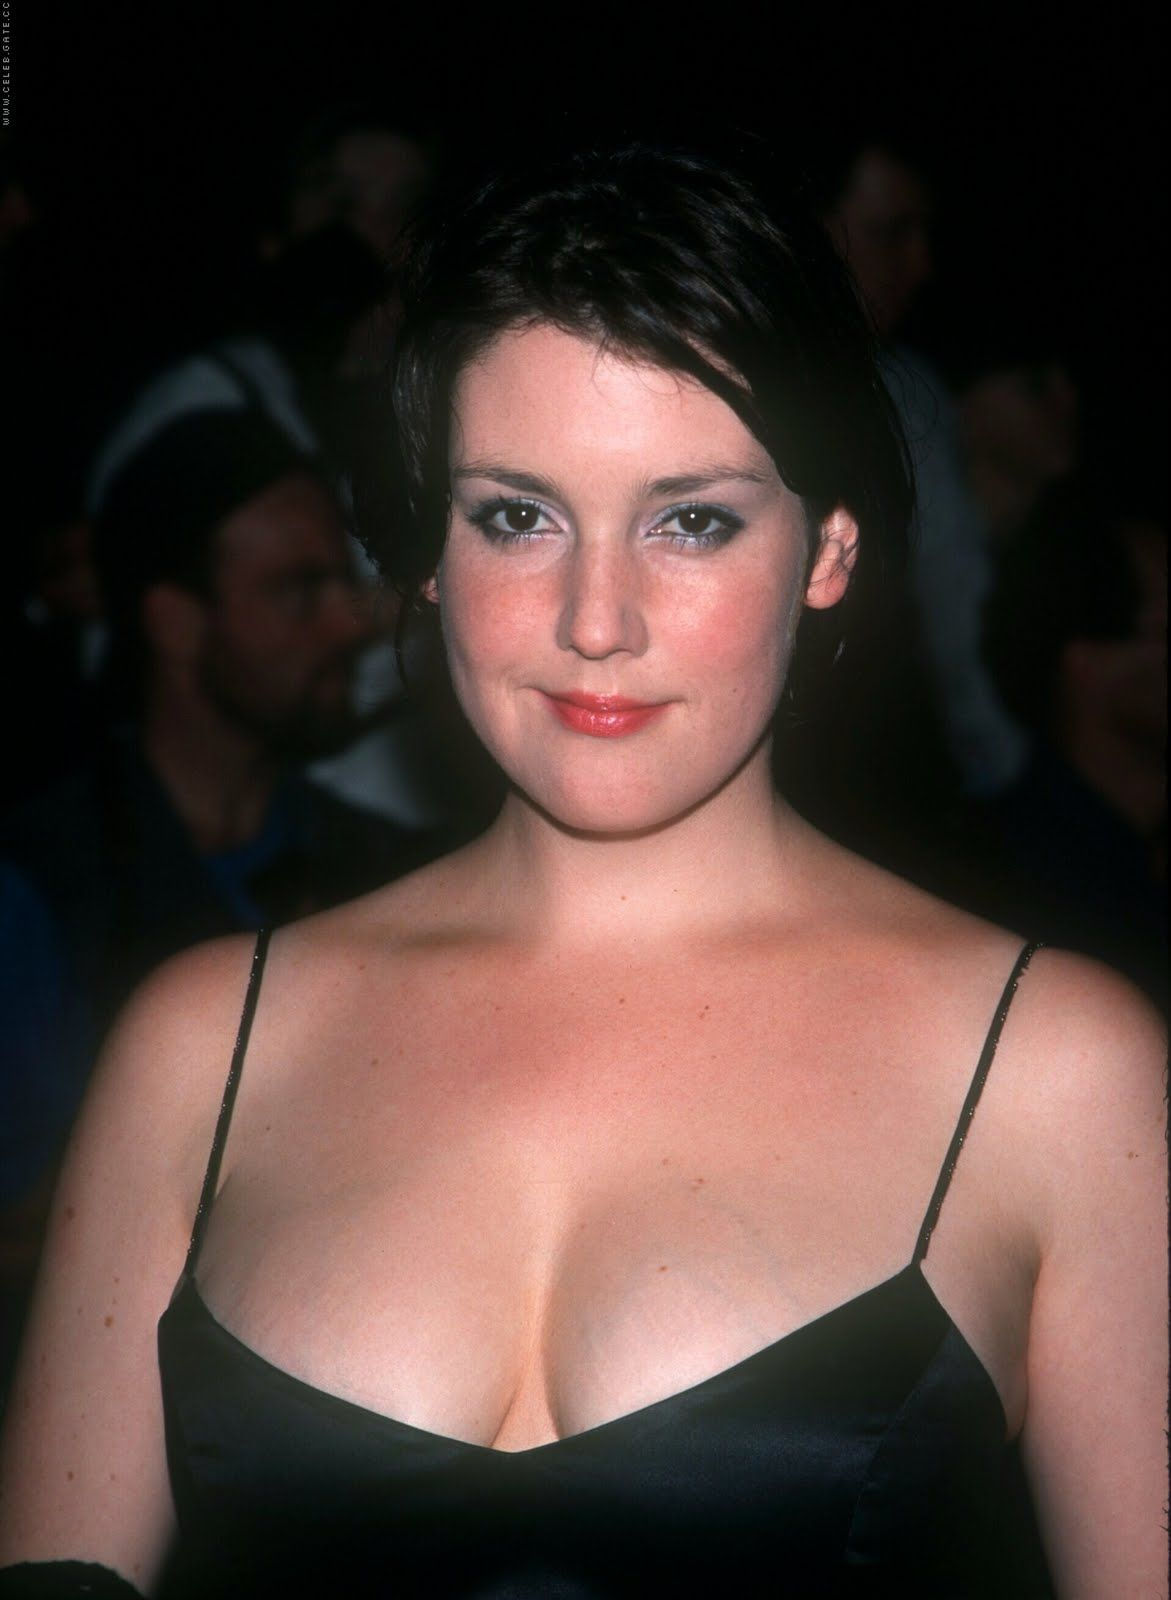 Melanie Lynskey naked (59 photo), Sexy, Cleavage, Instagram, butt 2006